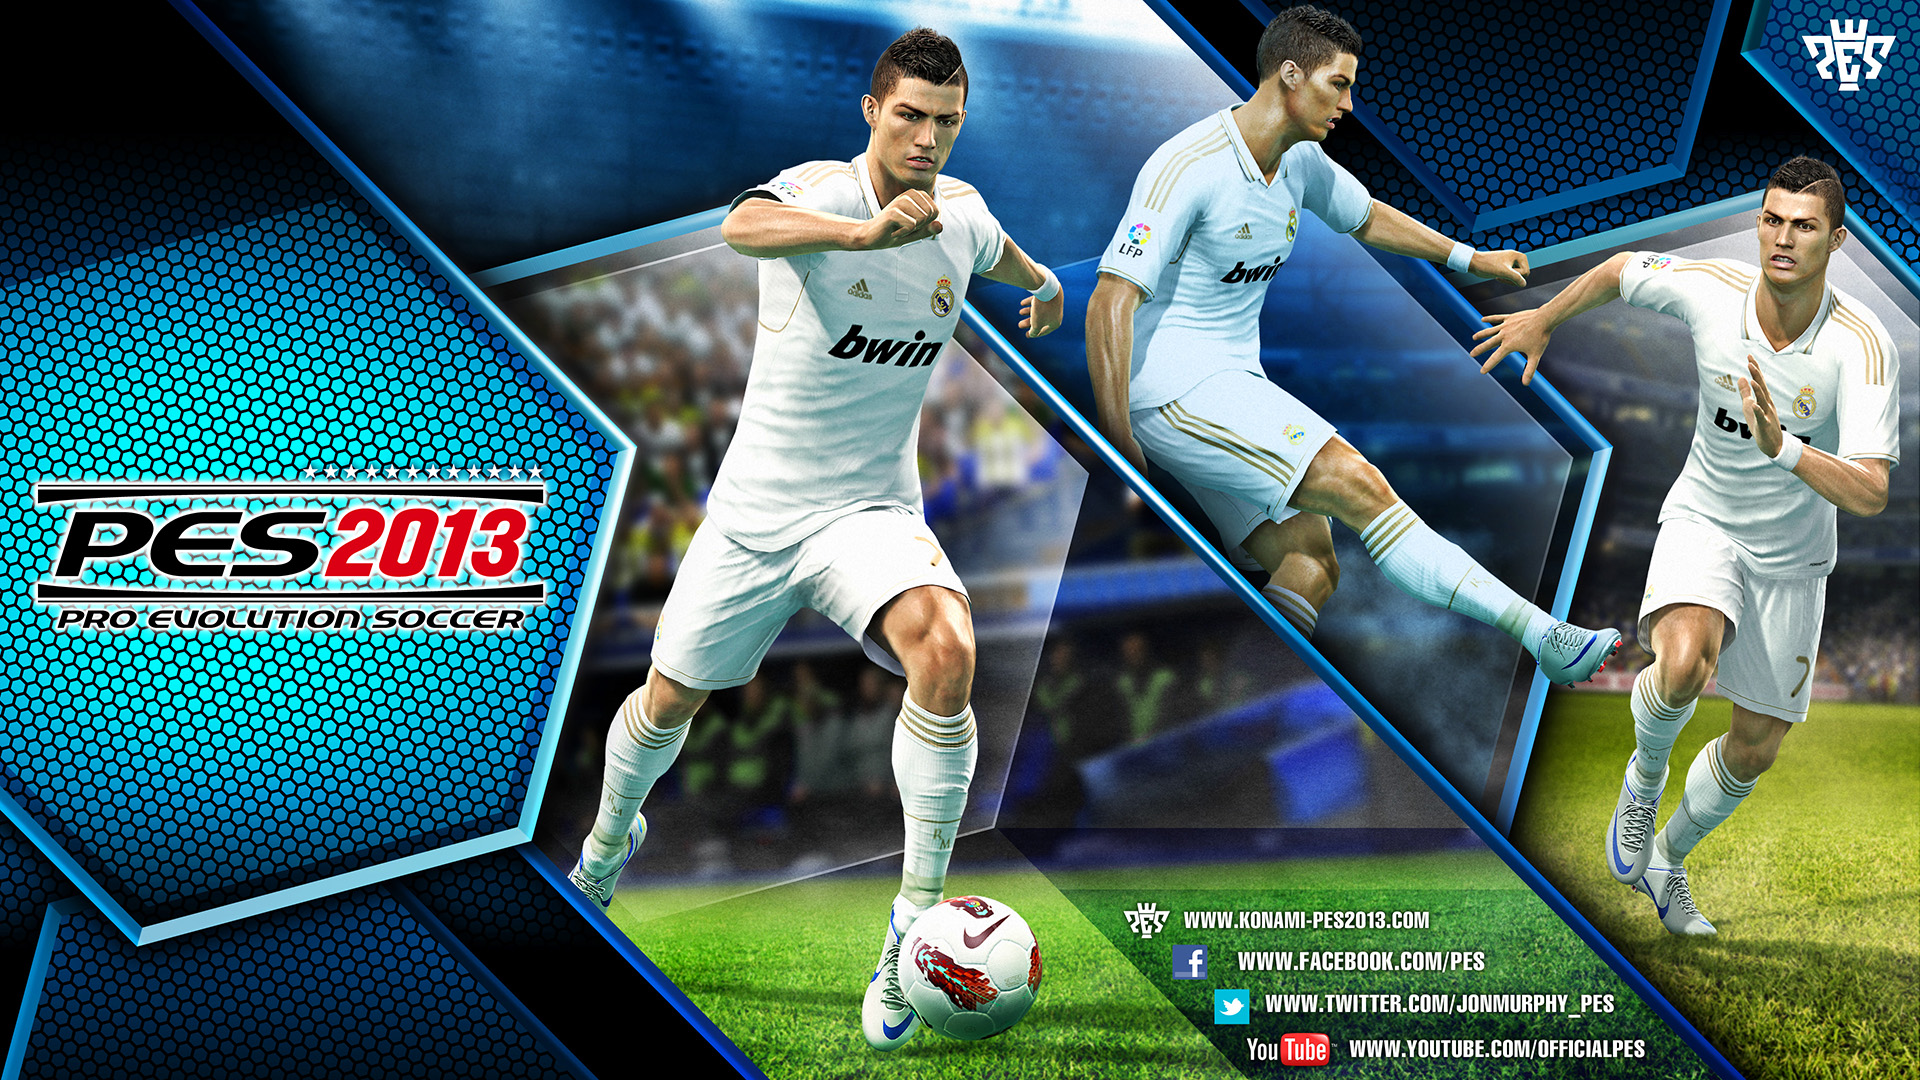 PES Pro Evolution Soccer 2013 Free Download - Ocean Of Games